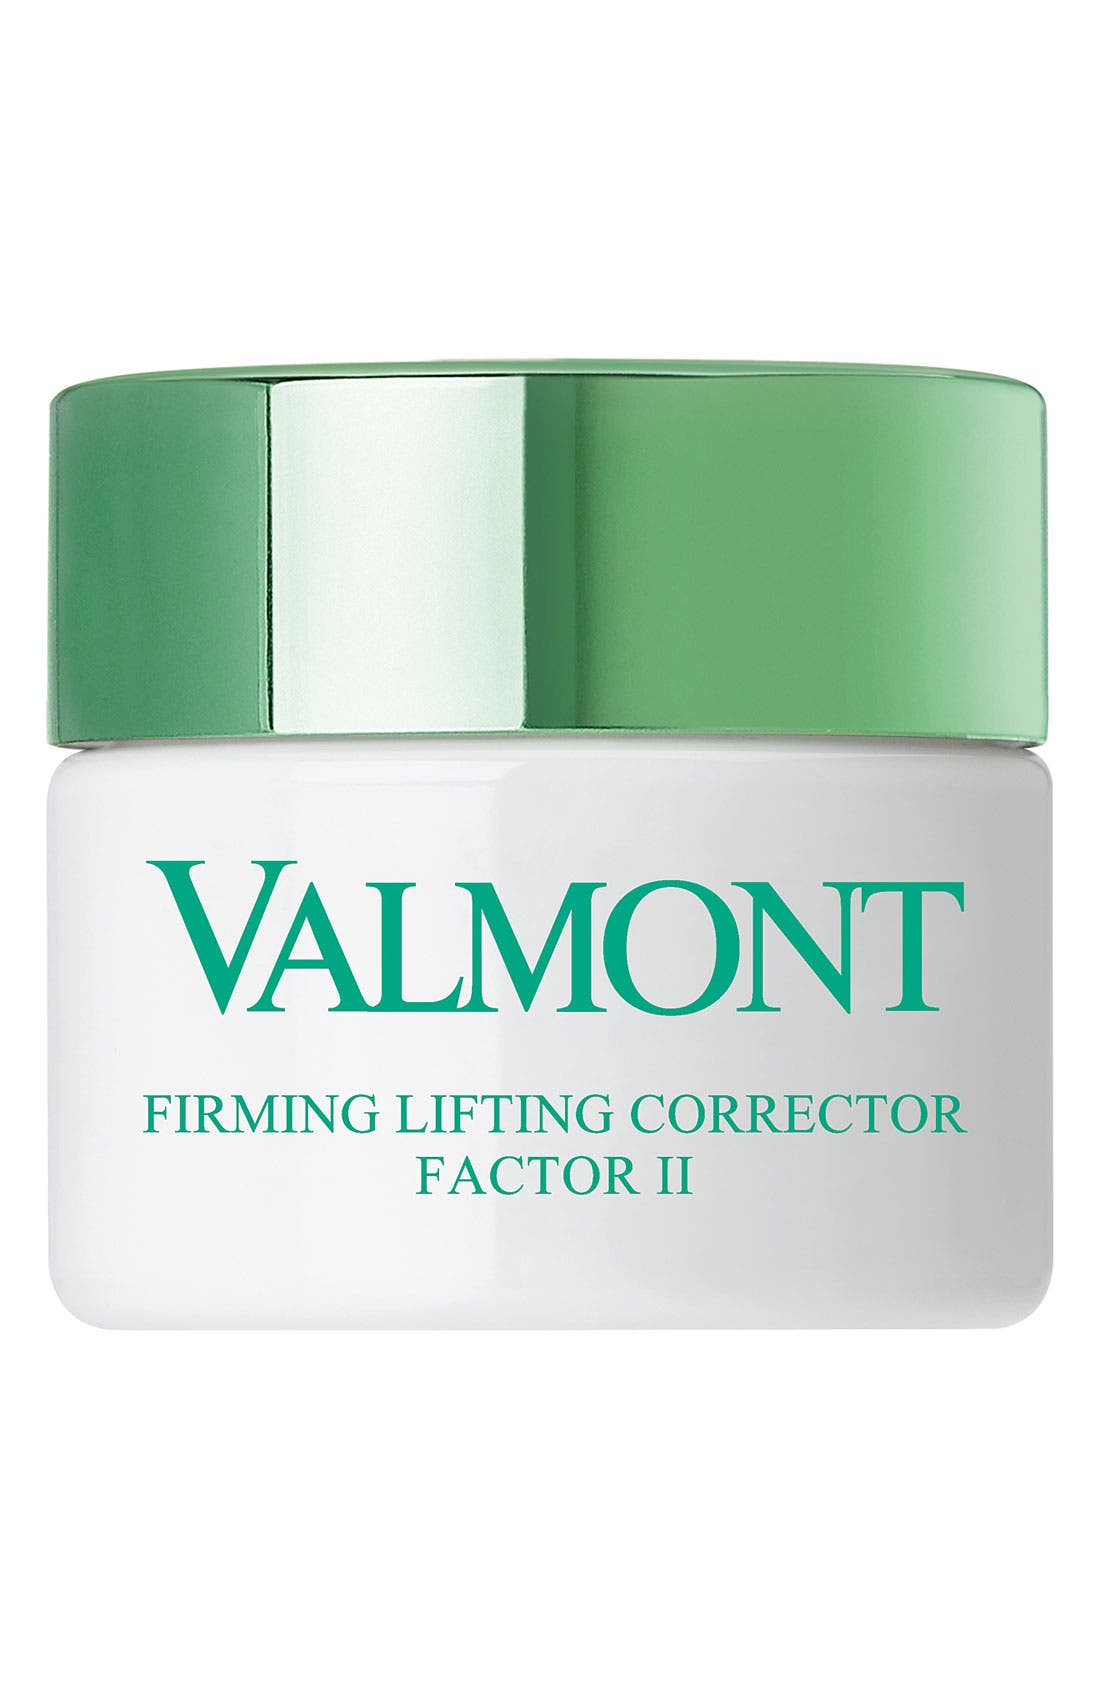 'Firming Lifting Corrector Factor II' Treatment,                             Main thumbnail 1, color,                             000